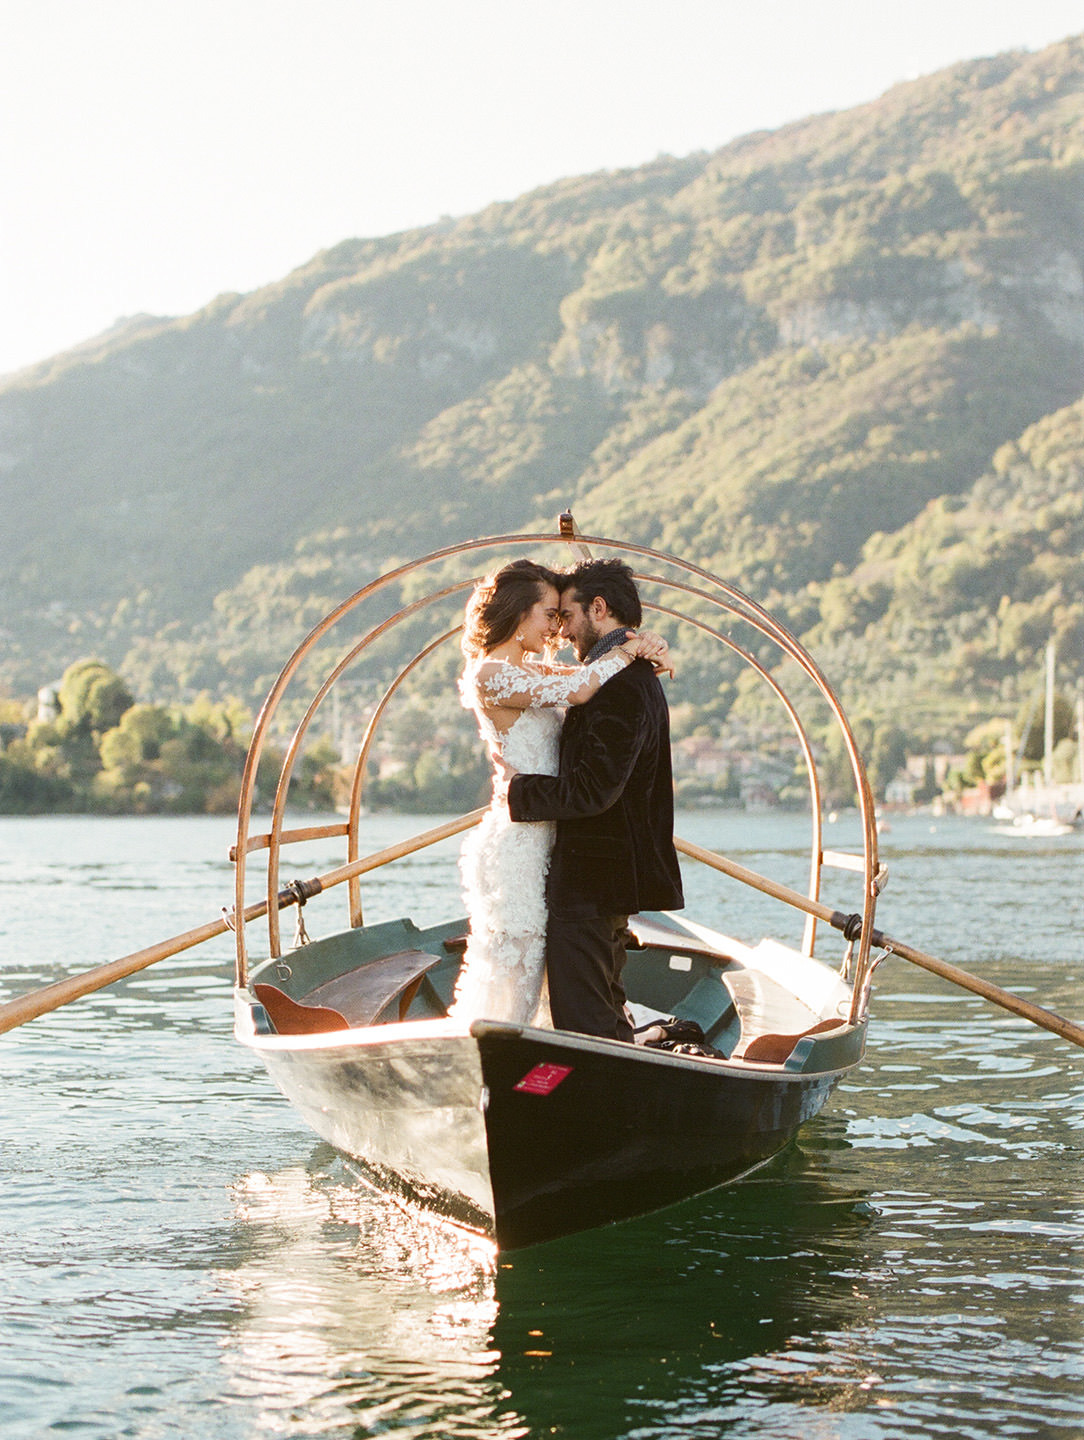 villa balbiano bride and groom in boat kissing